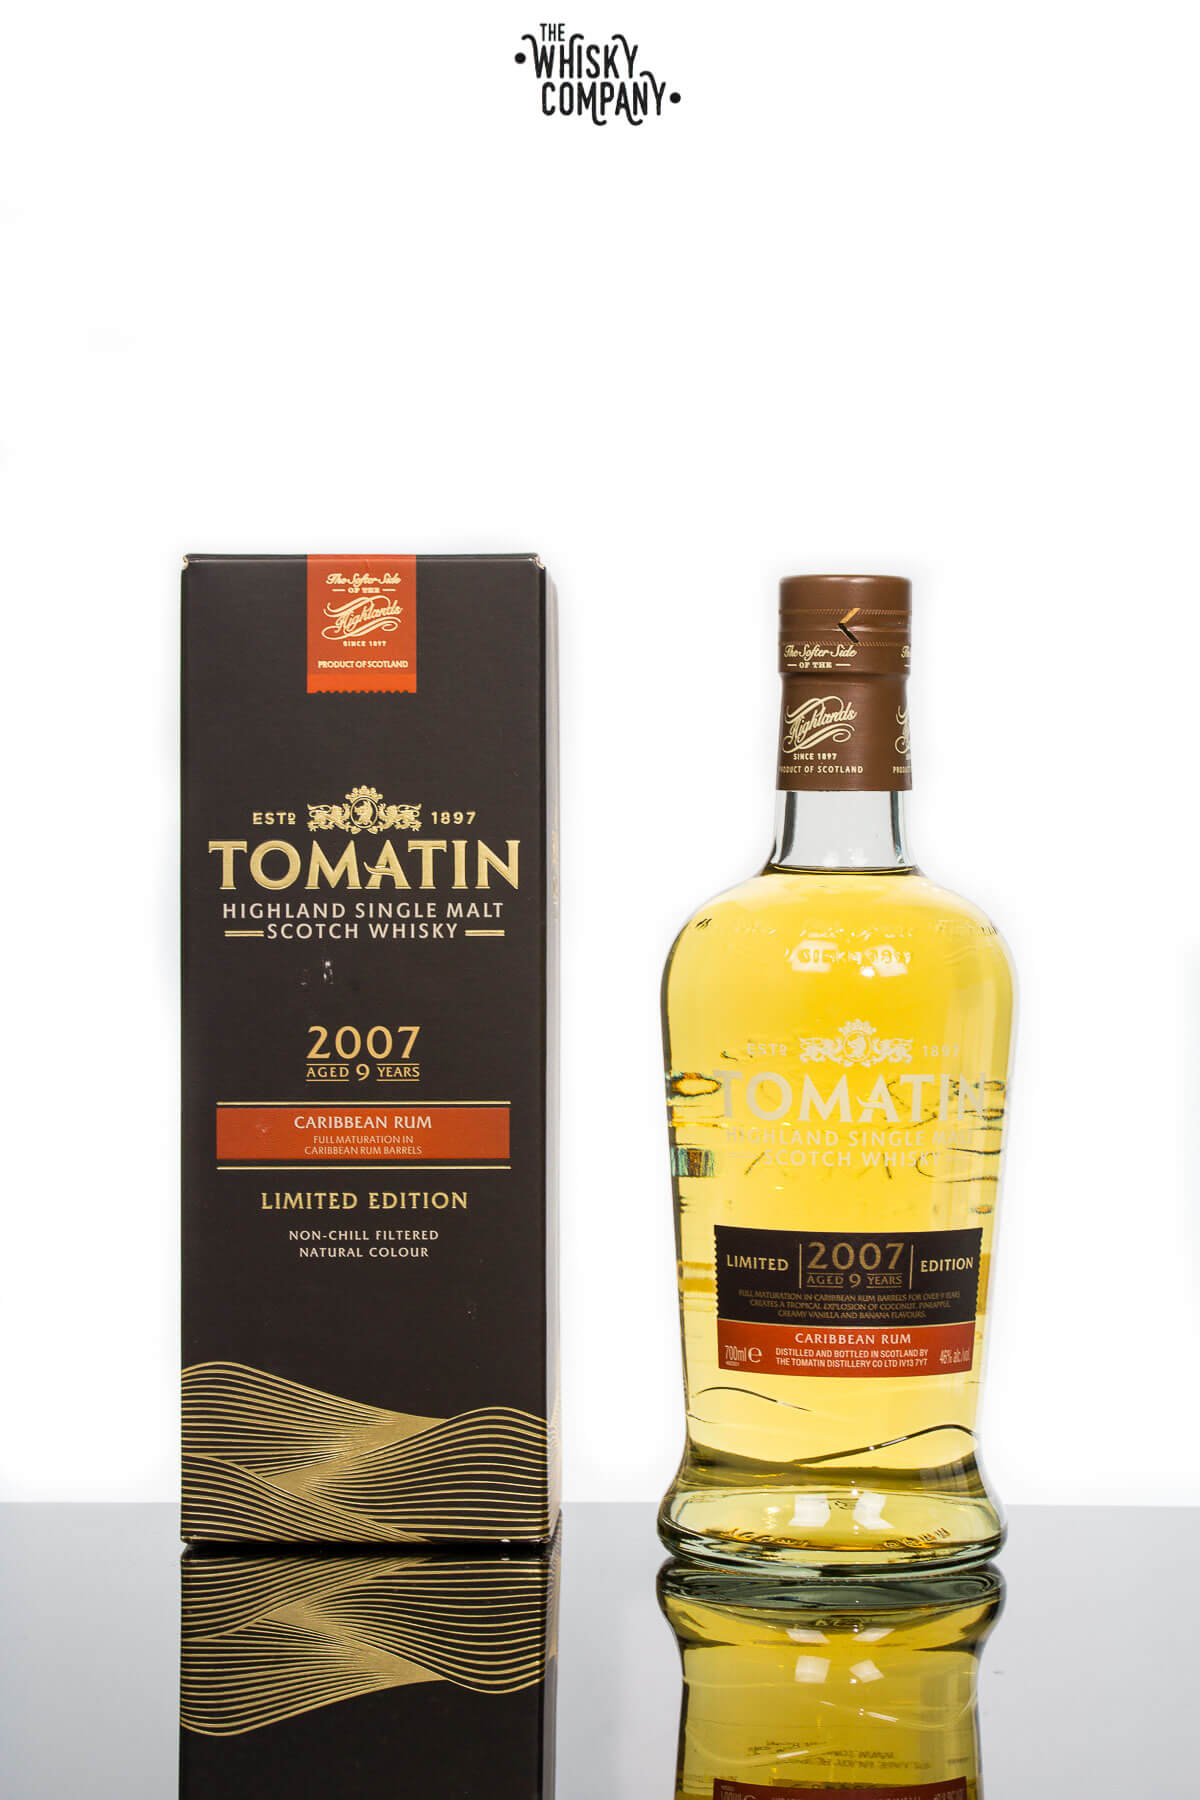 Tomatin 2007 Aged 9 Years Caribbean Rum Matured Highland Single Malt Scotch Whisky